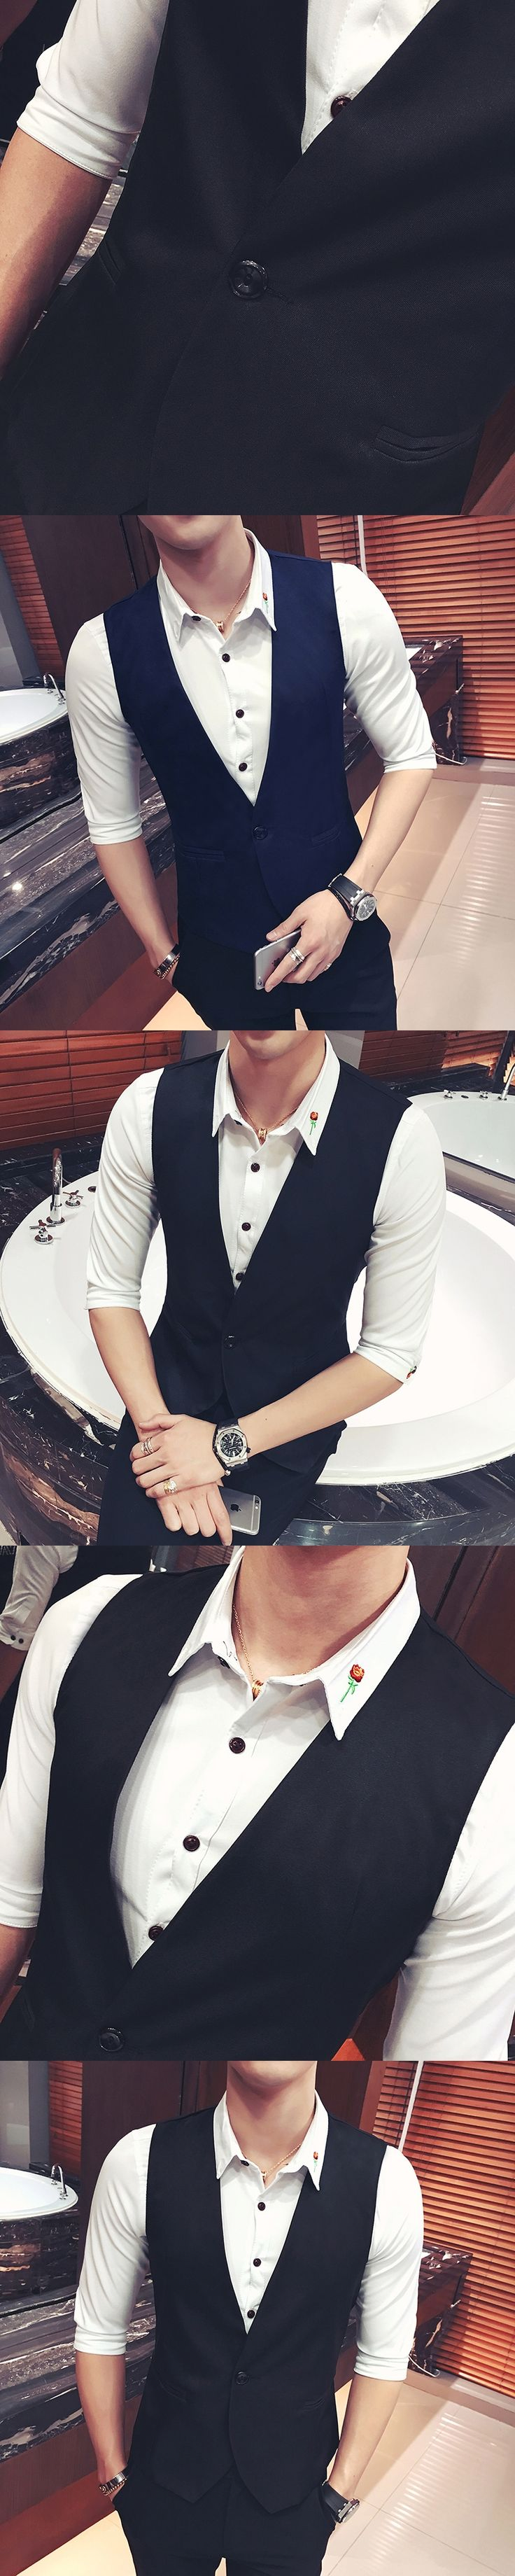 Fashion 2018 New Vest Men Hotel Work Clothing One Button Slim Fit Men Waistcoat V Neck Casual Sleeveless Solid chaleco hombre